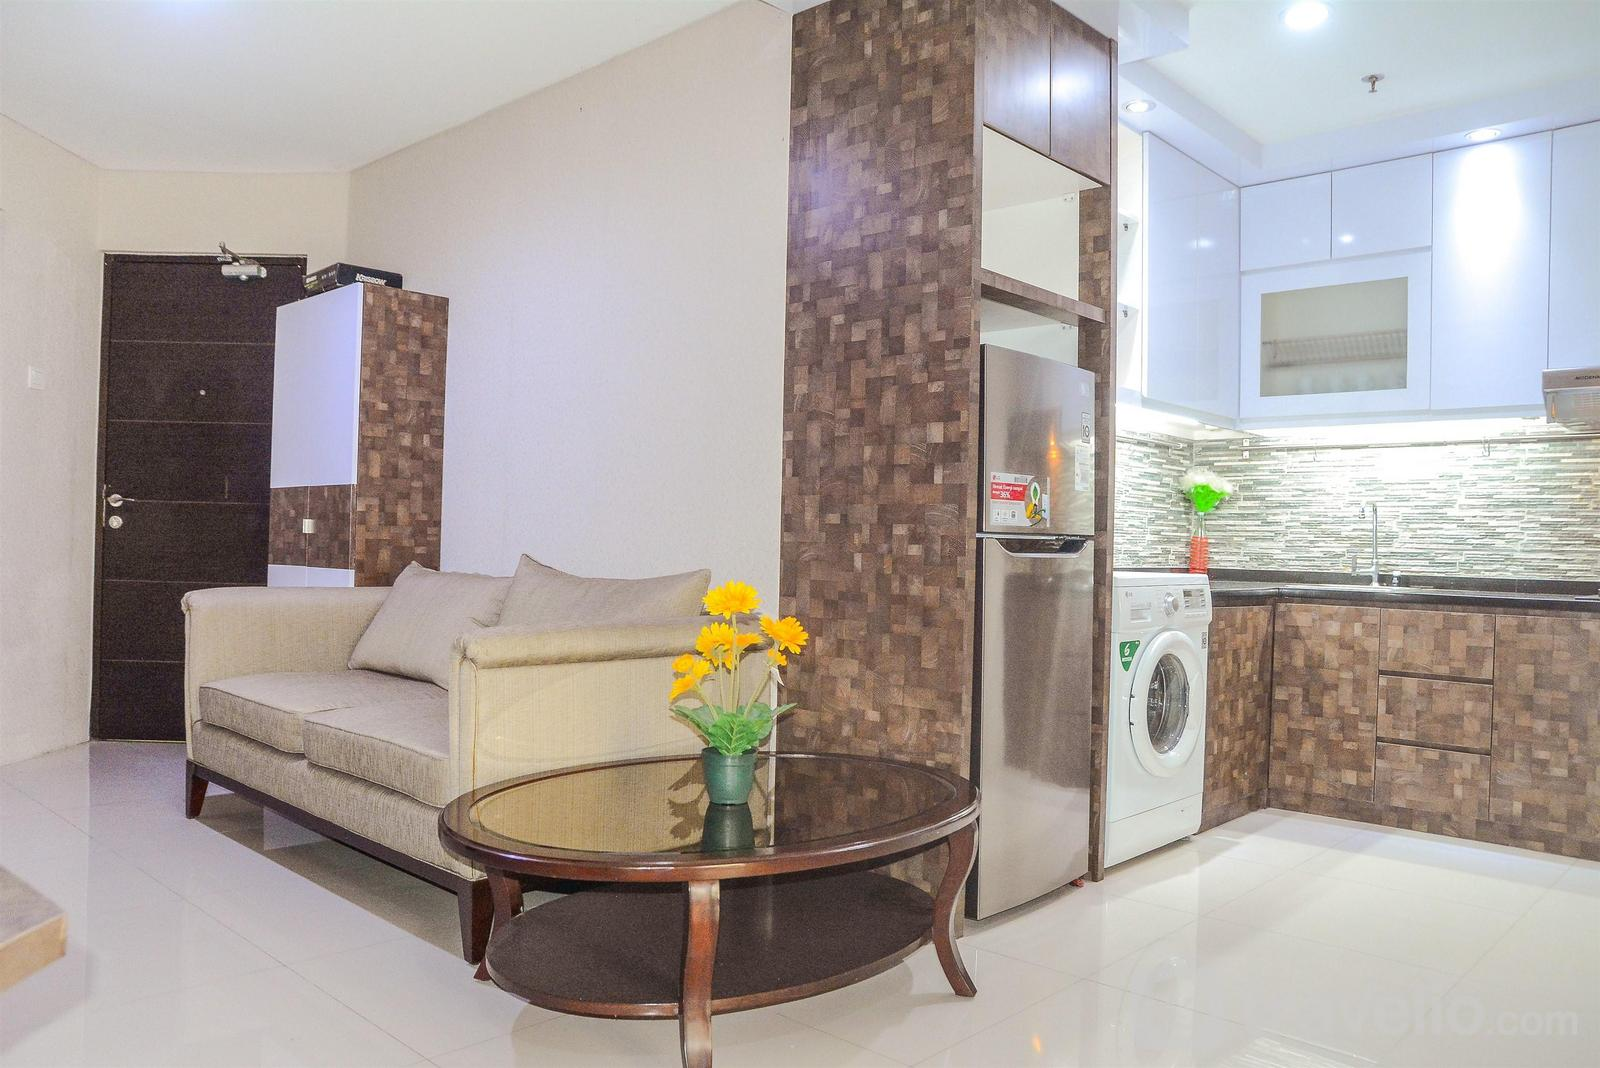 Tamansari Semanggi Apartment - Best Choice 2BR Apartment at Tamansari Semanggi By Travelio